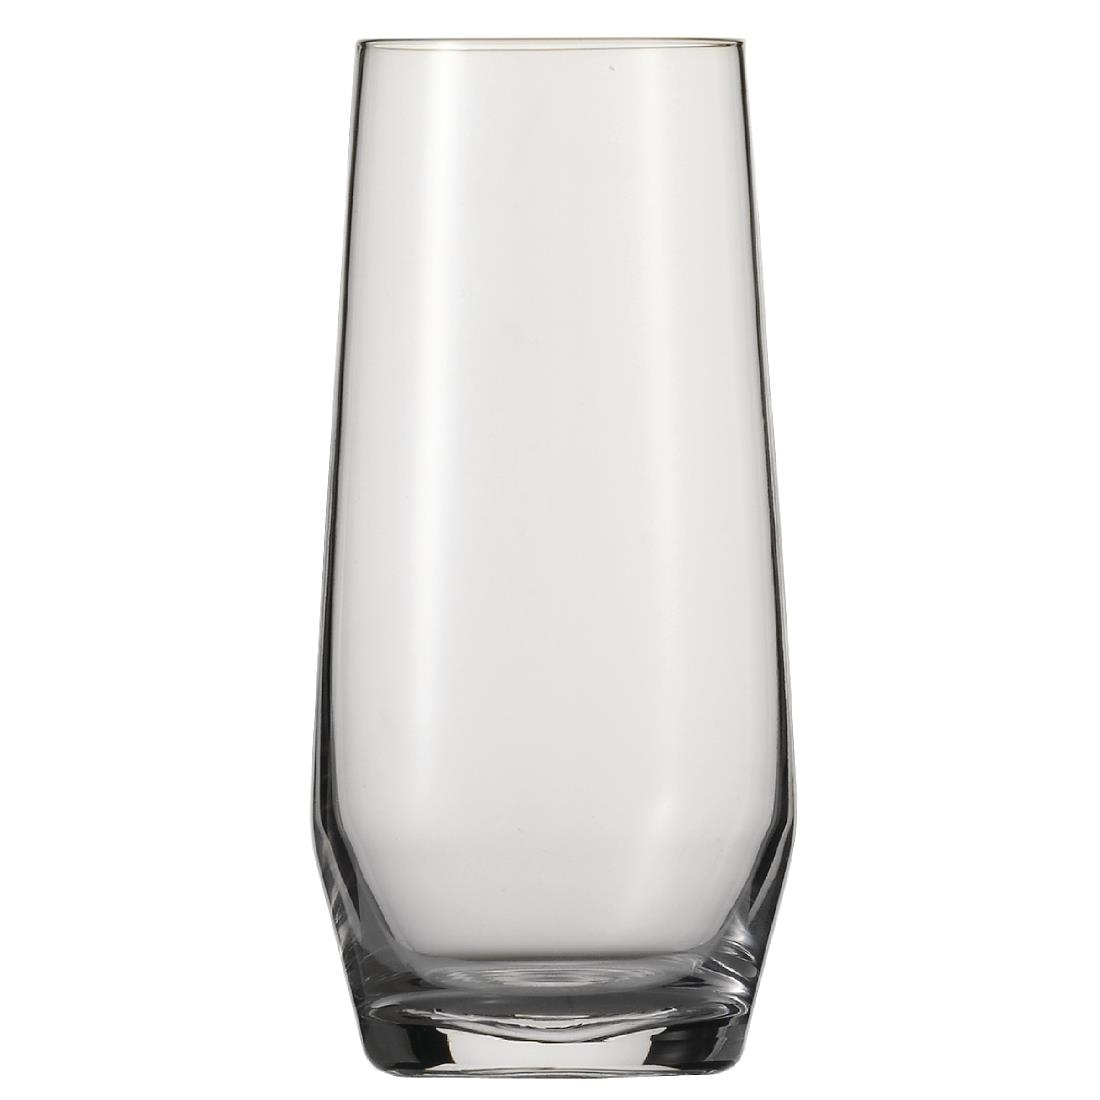 Schott Zwiesel Pure Crystal Hi Ball Glasses 357ml (Pack of 6) Pack of 6 Image